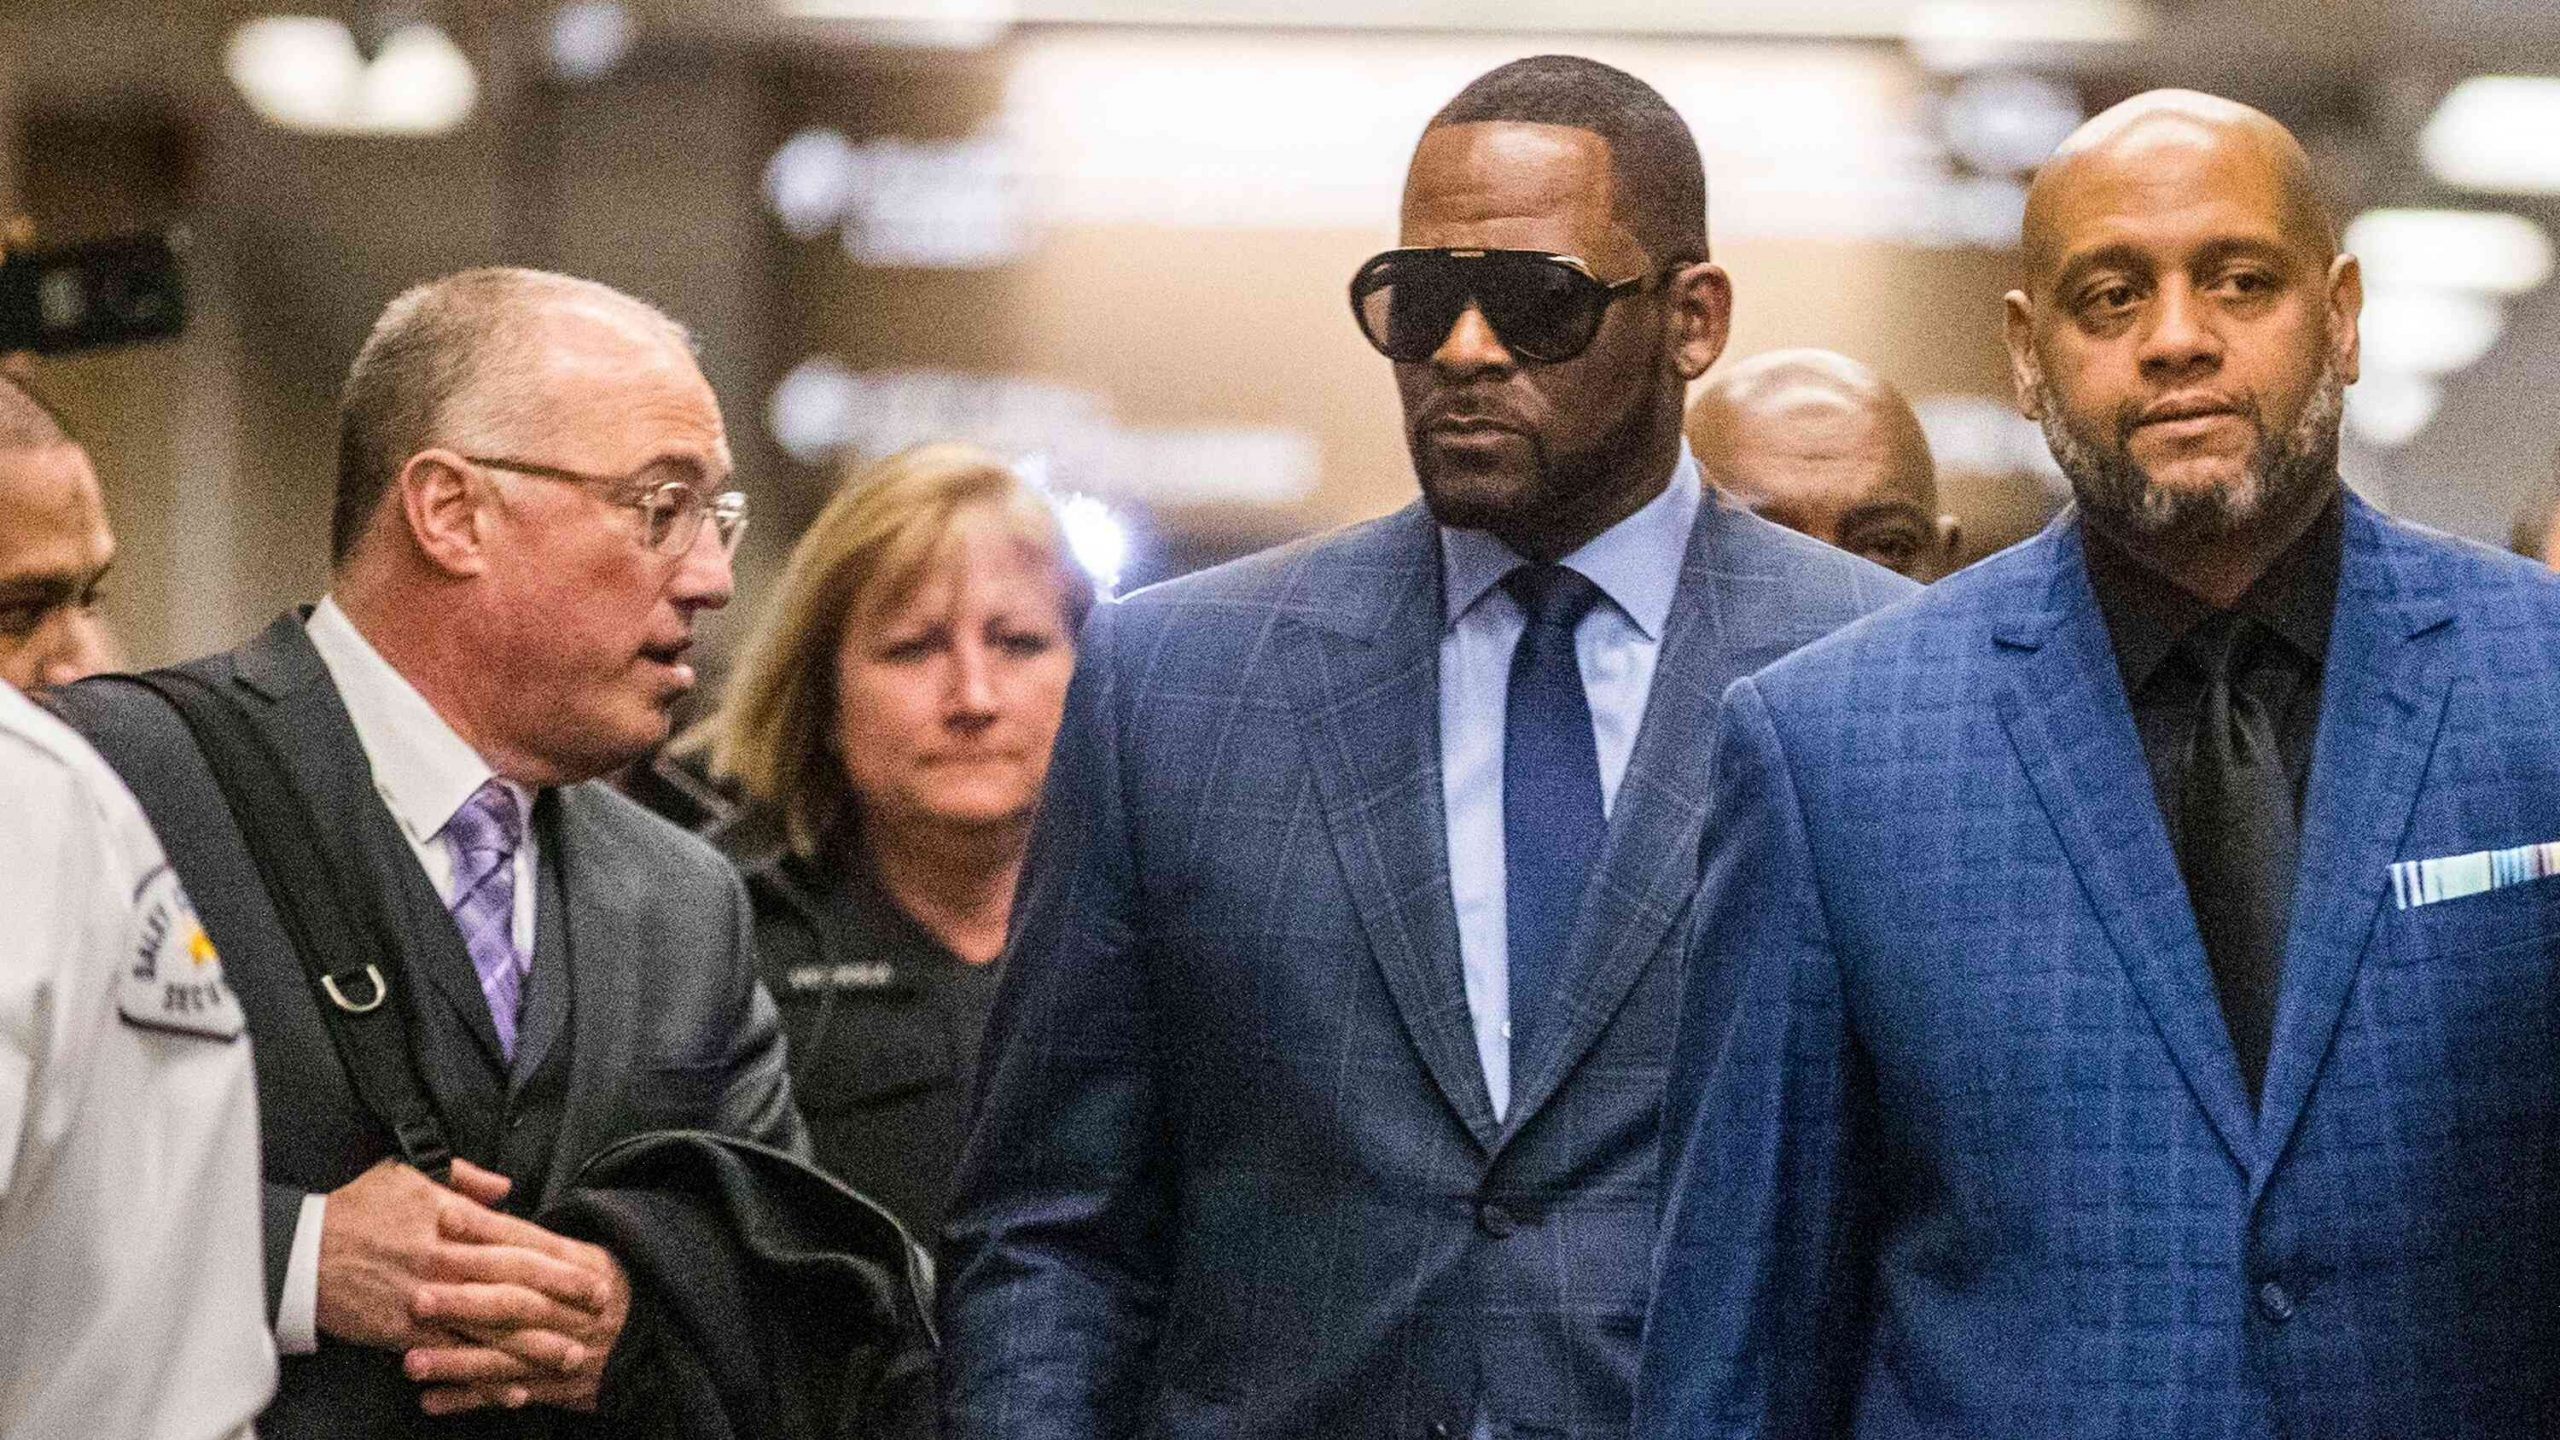 Another pair of Chicago cops charged with misconduct, and this time, it involves R. Kelly